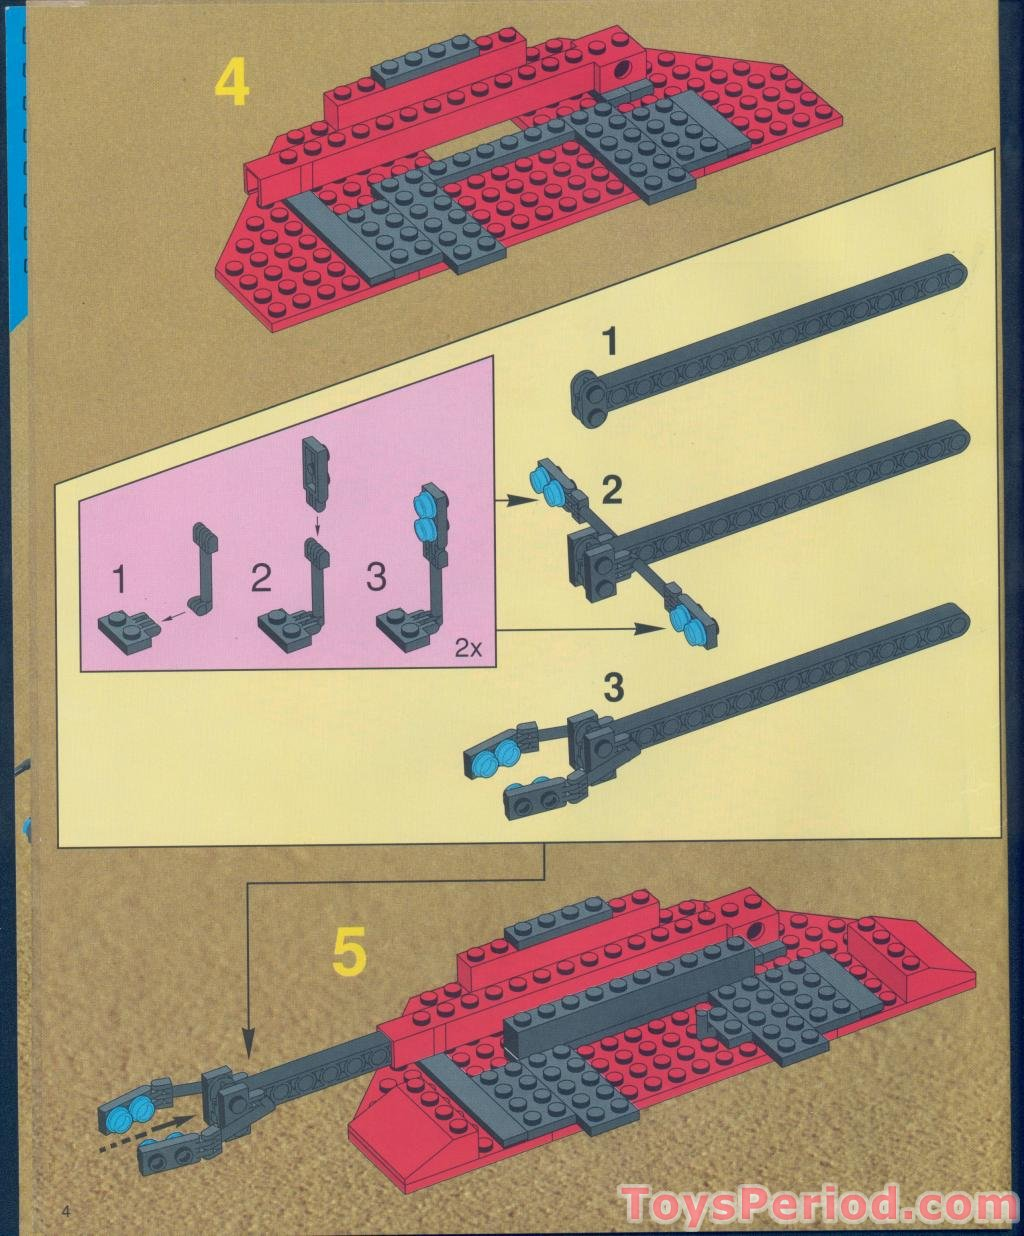 lego system 6889 instructions